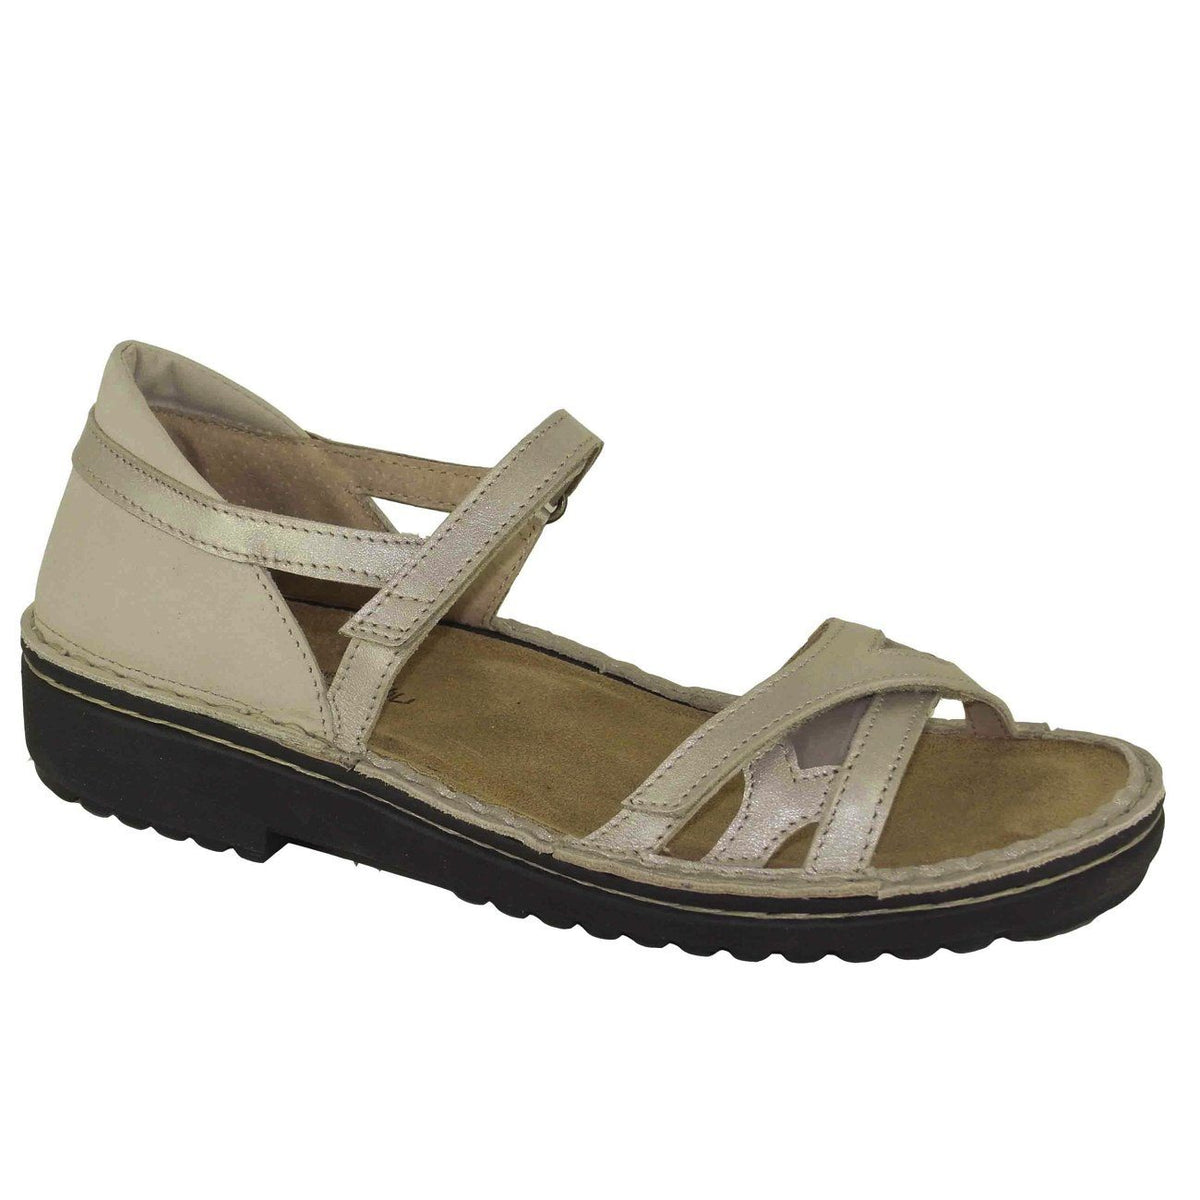 Naot, Tatiana, Leather, Medium Fit, Stardust Combo Sandals Naot Stardust Combo 37